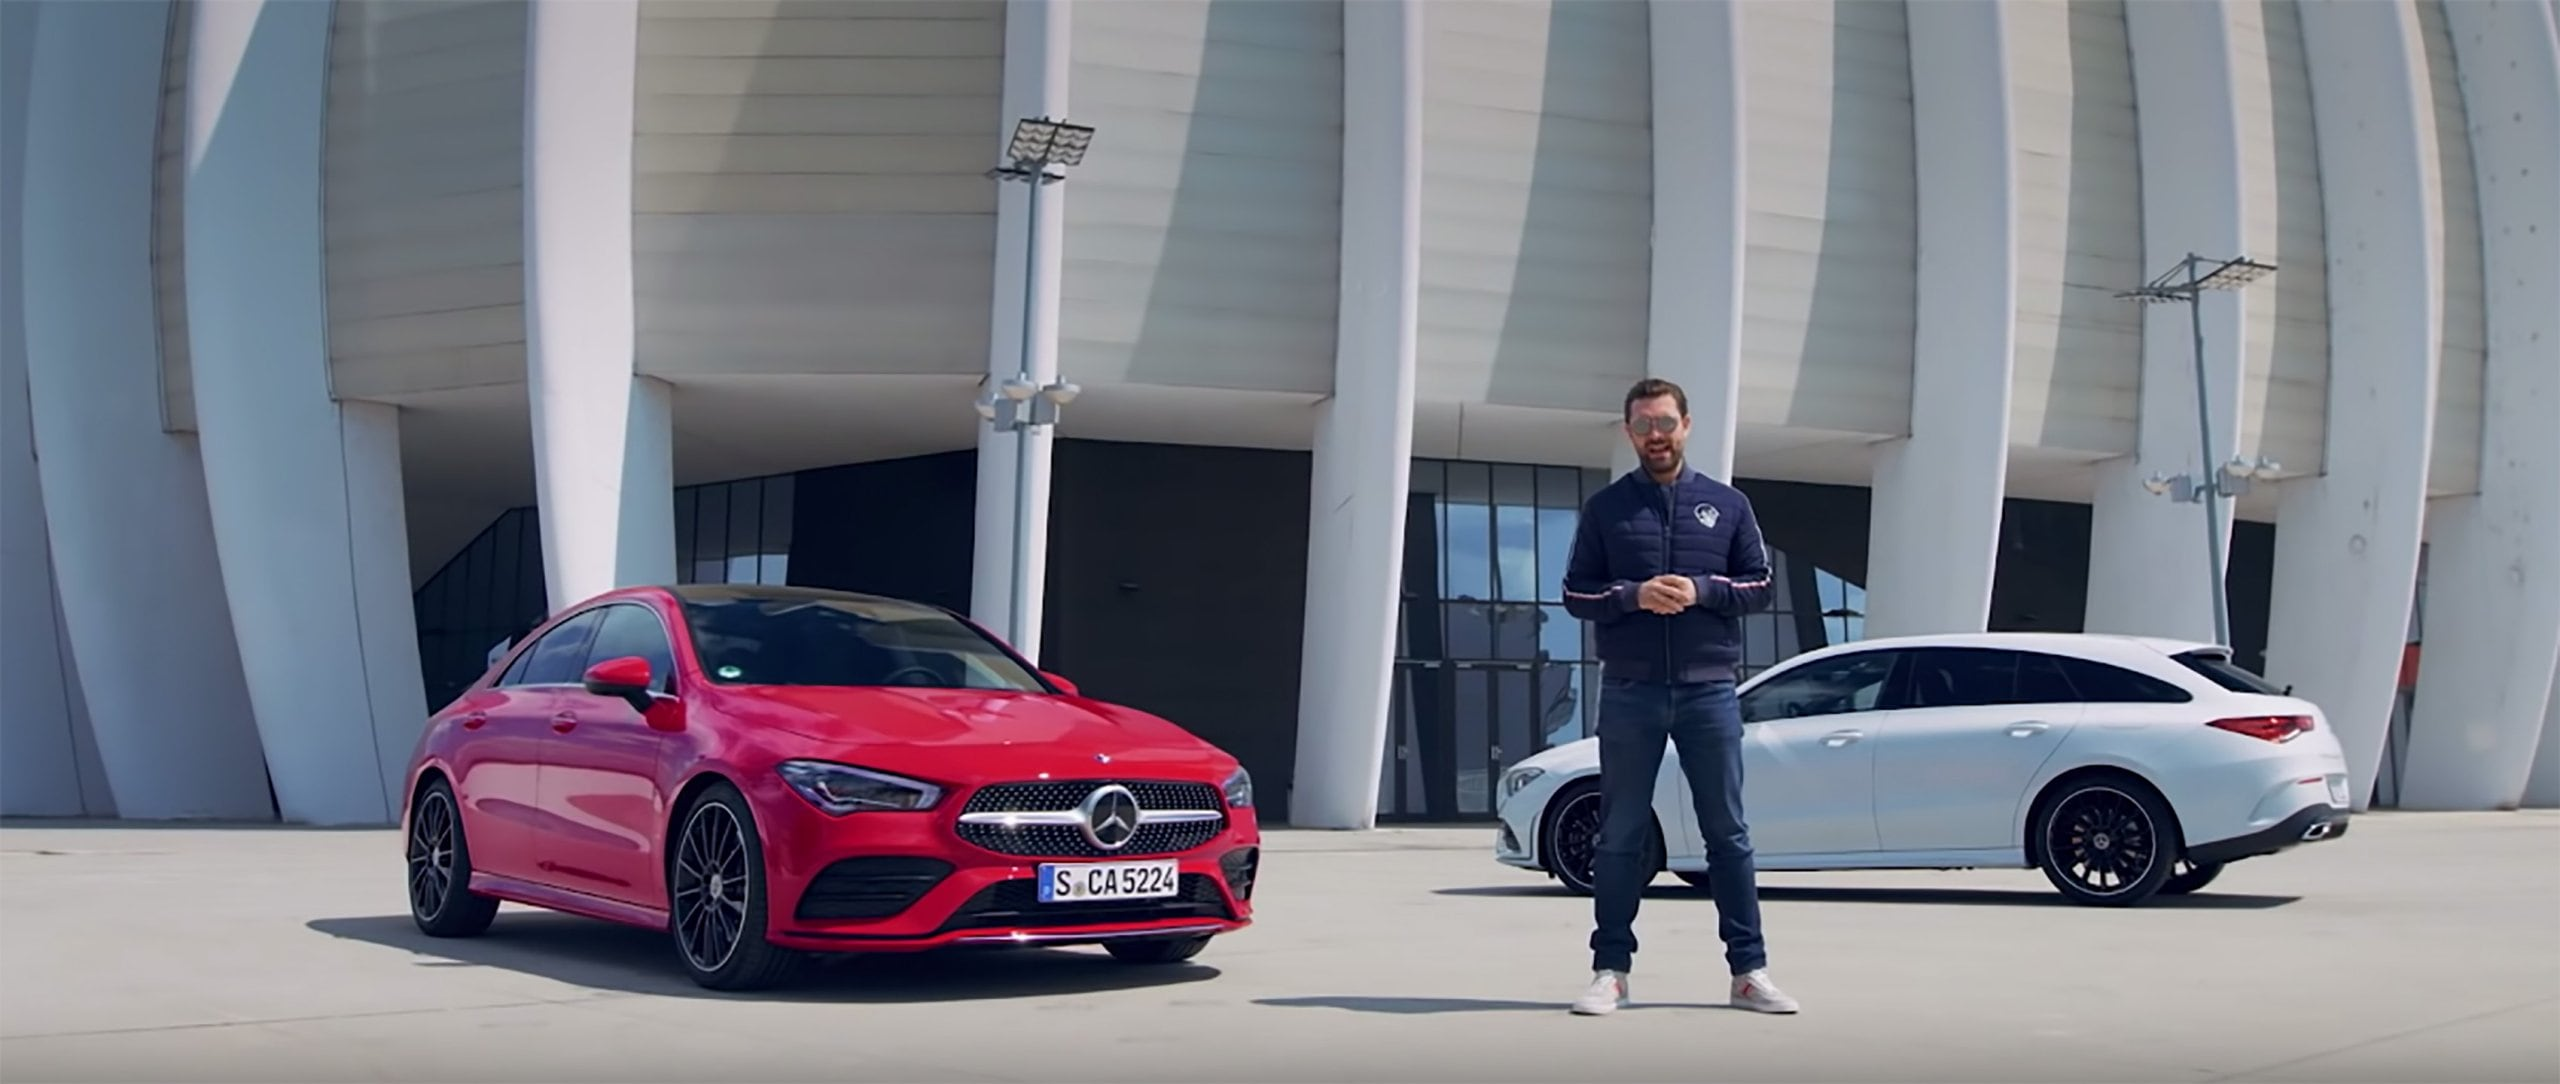 The new 2019 Mercedes-Benz CLA 250 4MATIC Coupé (C 118) in jupiter red next to the Mercedes-Benz CLA Shooting Brake, presented by MrJWW